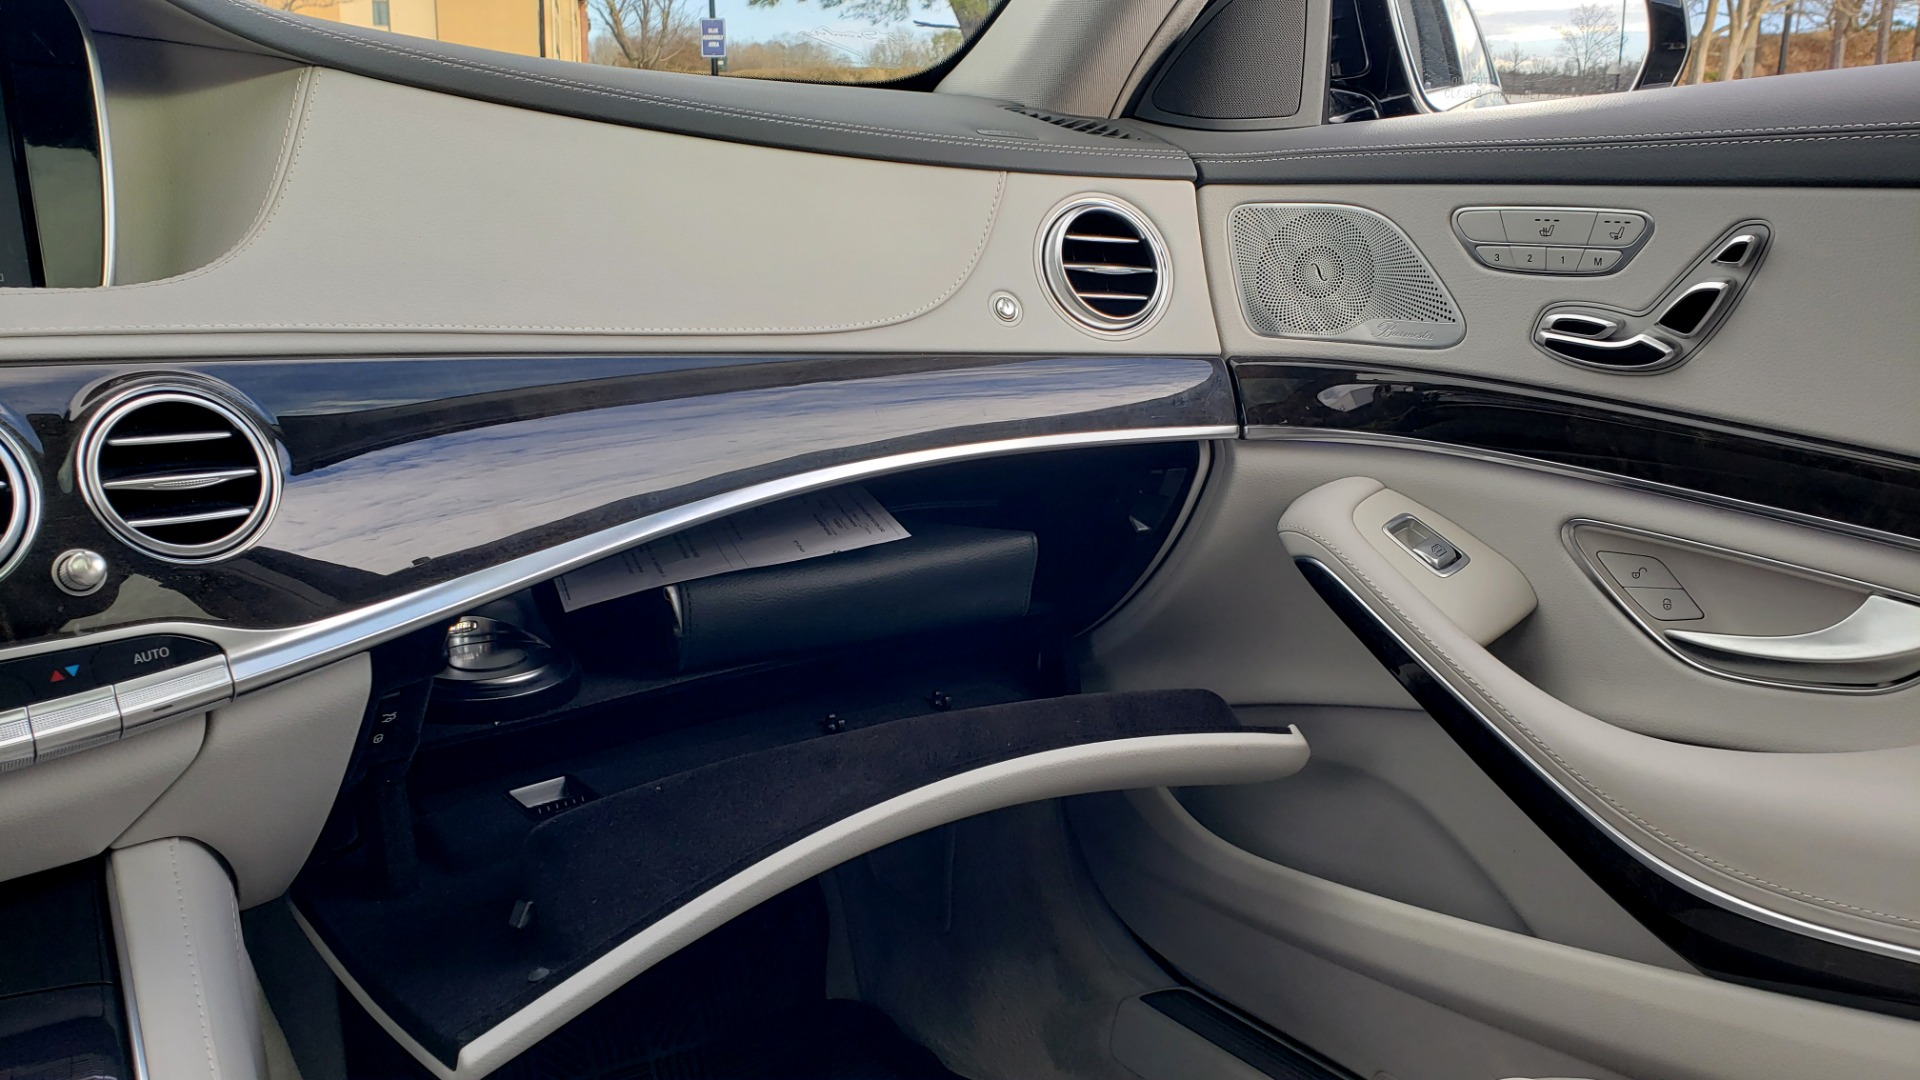 Used 2015 Mercedes-Benz S-CLASS S 550 PREMIUM / SPORT / WARMTH&COMFORT / DRVR ASST / SRND VIEW for sale Sold at Formula Imports in Charlotte NC 28227 57